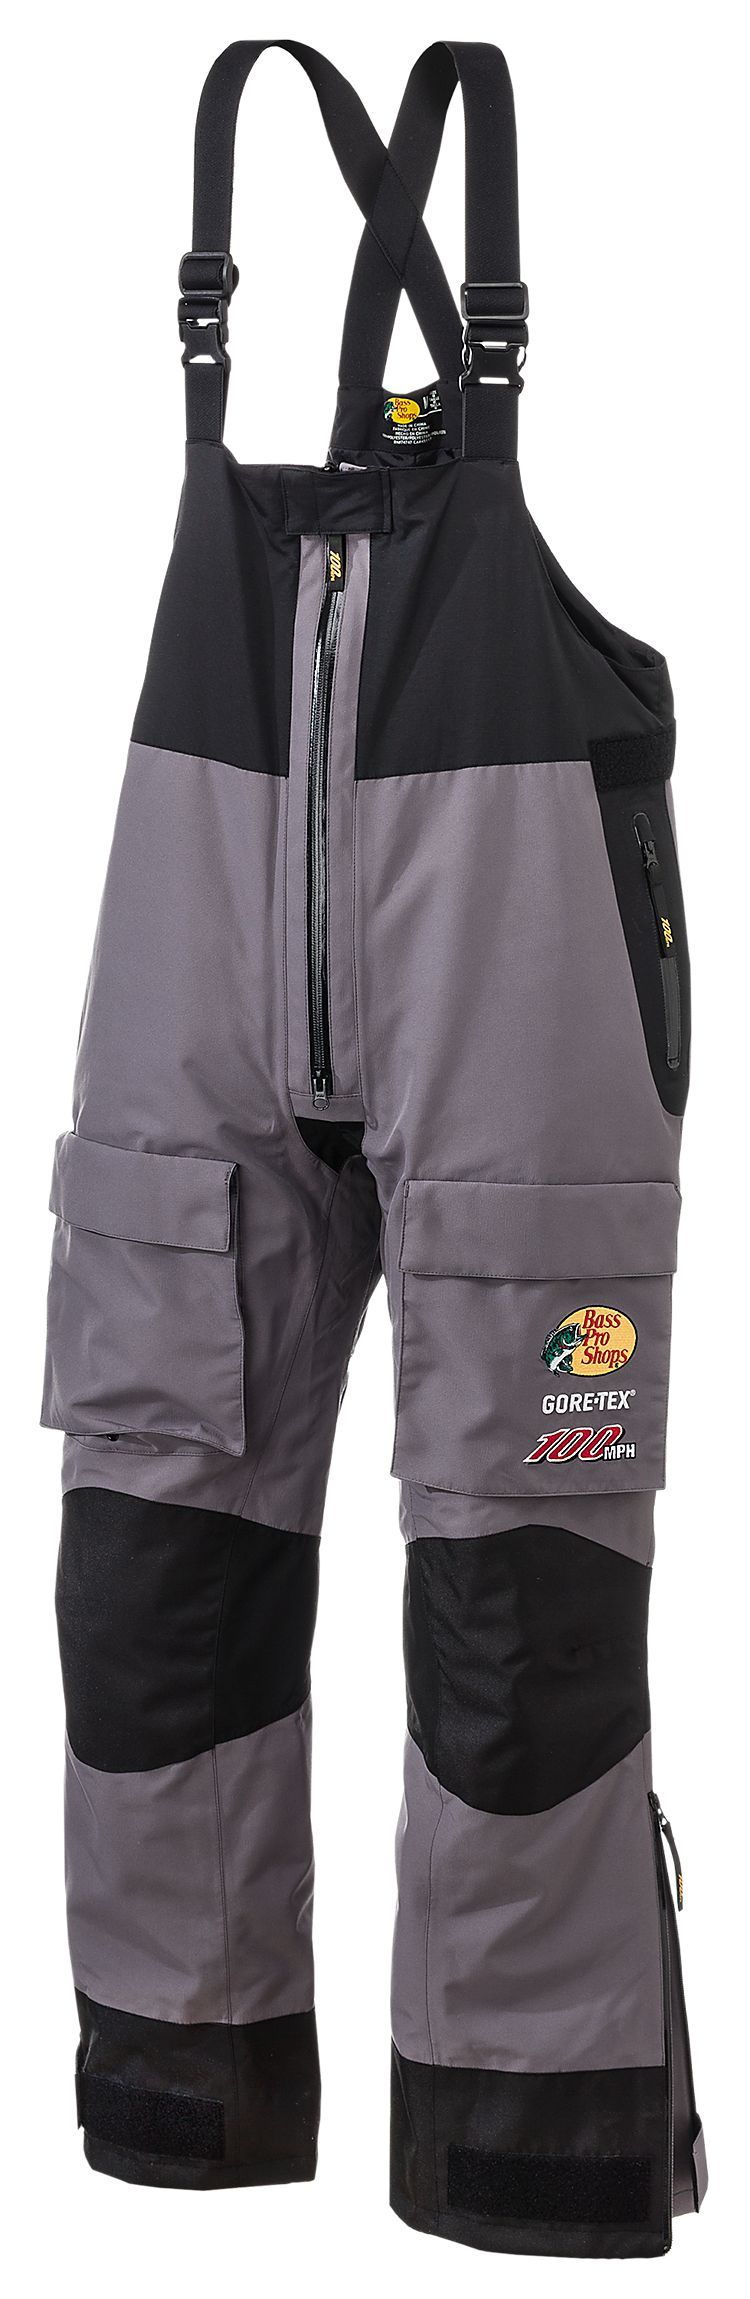 Bass pro shops 100mph gore tex rain bibs for men bass for Best ice fishing bibs